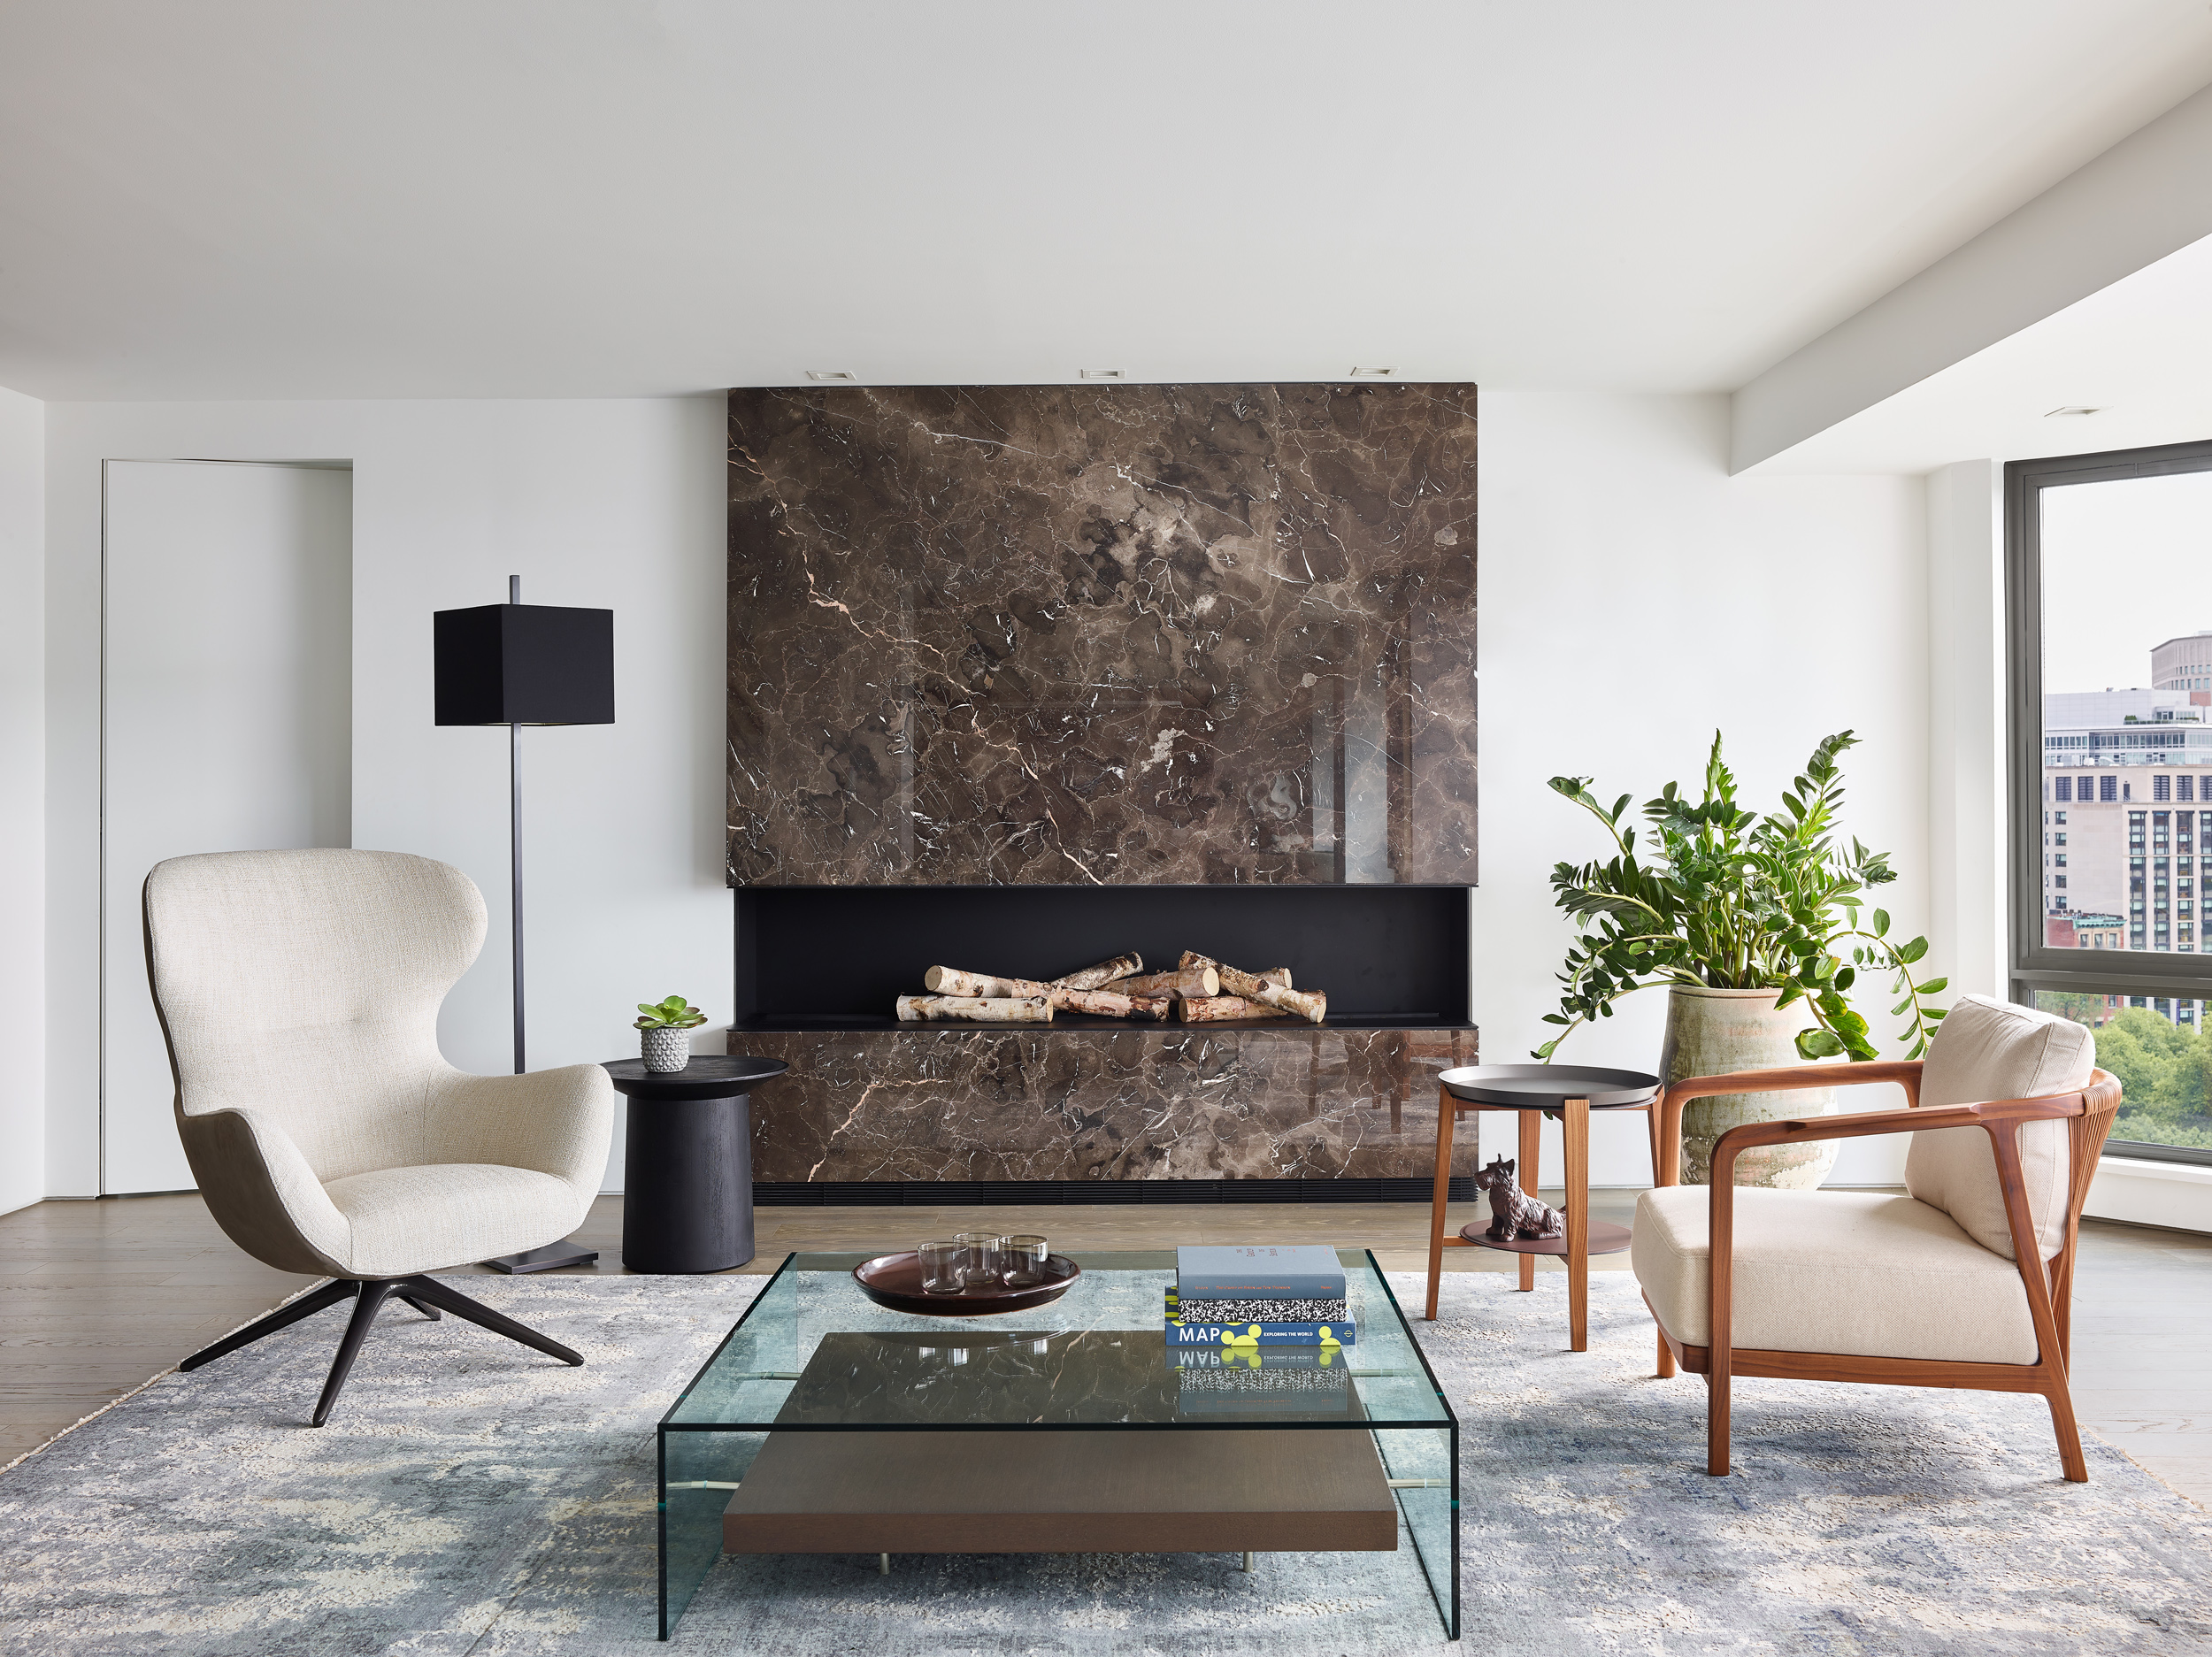 """DOWNTOWN LIVING   LOCATION Boston, MA  COMPLETED 2018  ARCHITECT & INTERIOR DESIGN Walker Architects  GENERAL CONTRACTOR The LaGasse Group  STONE SUPPLIER & FABRICATOR Cumar  PHOTOGRAPHER Jared Kuzia Photography    Our clients, downtown academics with grown children, sought to combine two mid-rise apartments to gain an unparalleled elevated view sweeping from the dome of the Boston State House westward to the riverfront campuses of MIT and Harvard. Because the owners were already comfortably at home in one of the apartments, the added second unit was designed as additional spaces for relaxation, with accommodations for billiards and darts, a seating area focused on a dramatic new fireplace, a sophisticated wine bar, and an adjacent study with sleek guest bath. New finishes were extended throughout the """"public"""" areas of the combined apartment, and include a newly paneled entry hall with concealed closets and a vegetated wall facing the front door.  In a home where the view is always going to be the star, new spaces are united in their modern simplicity, careful detailing and luxurious choices in materials. Anchoring a 45-foot long living room, a plane of warm brown marble is incised with a matte black steel fireplace that mimics the horizontal glow of the room's daily western sunsets. Nearby, wine is served on a white marble pattern-matched table, backed by a display of bottles in a conditioned """"cellar"""" lined with the same marble cut thin and backlit. Flanking the wine storage and display are paired dark bolivar cabinets housing serveries with concealed refrigeration and dishwashers. The guest bath, a study in smooth grey and white, features frameless glass, concealed ribbons of light and super-minimalist washbasins carved into a floating quartzite ledge. All spaces are wrapped in crisp white plaster without trim or baseboards, floating above a new floor of richly stained oak."""